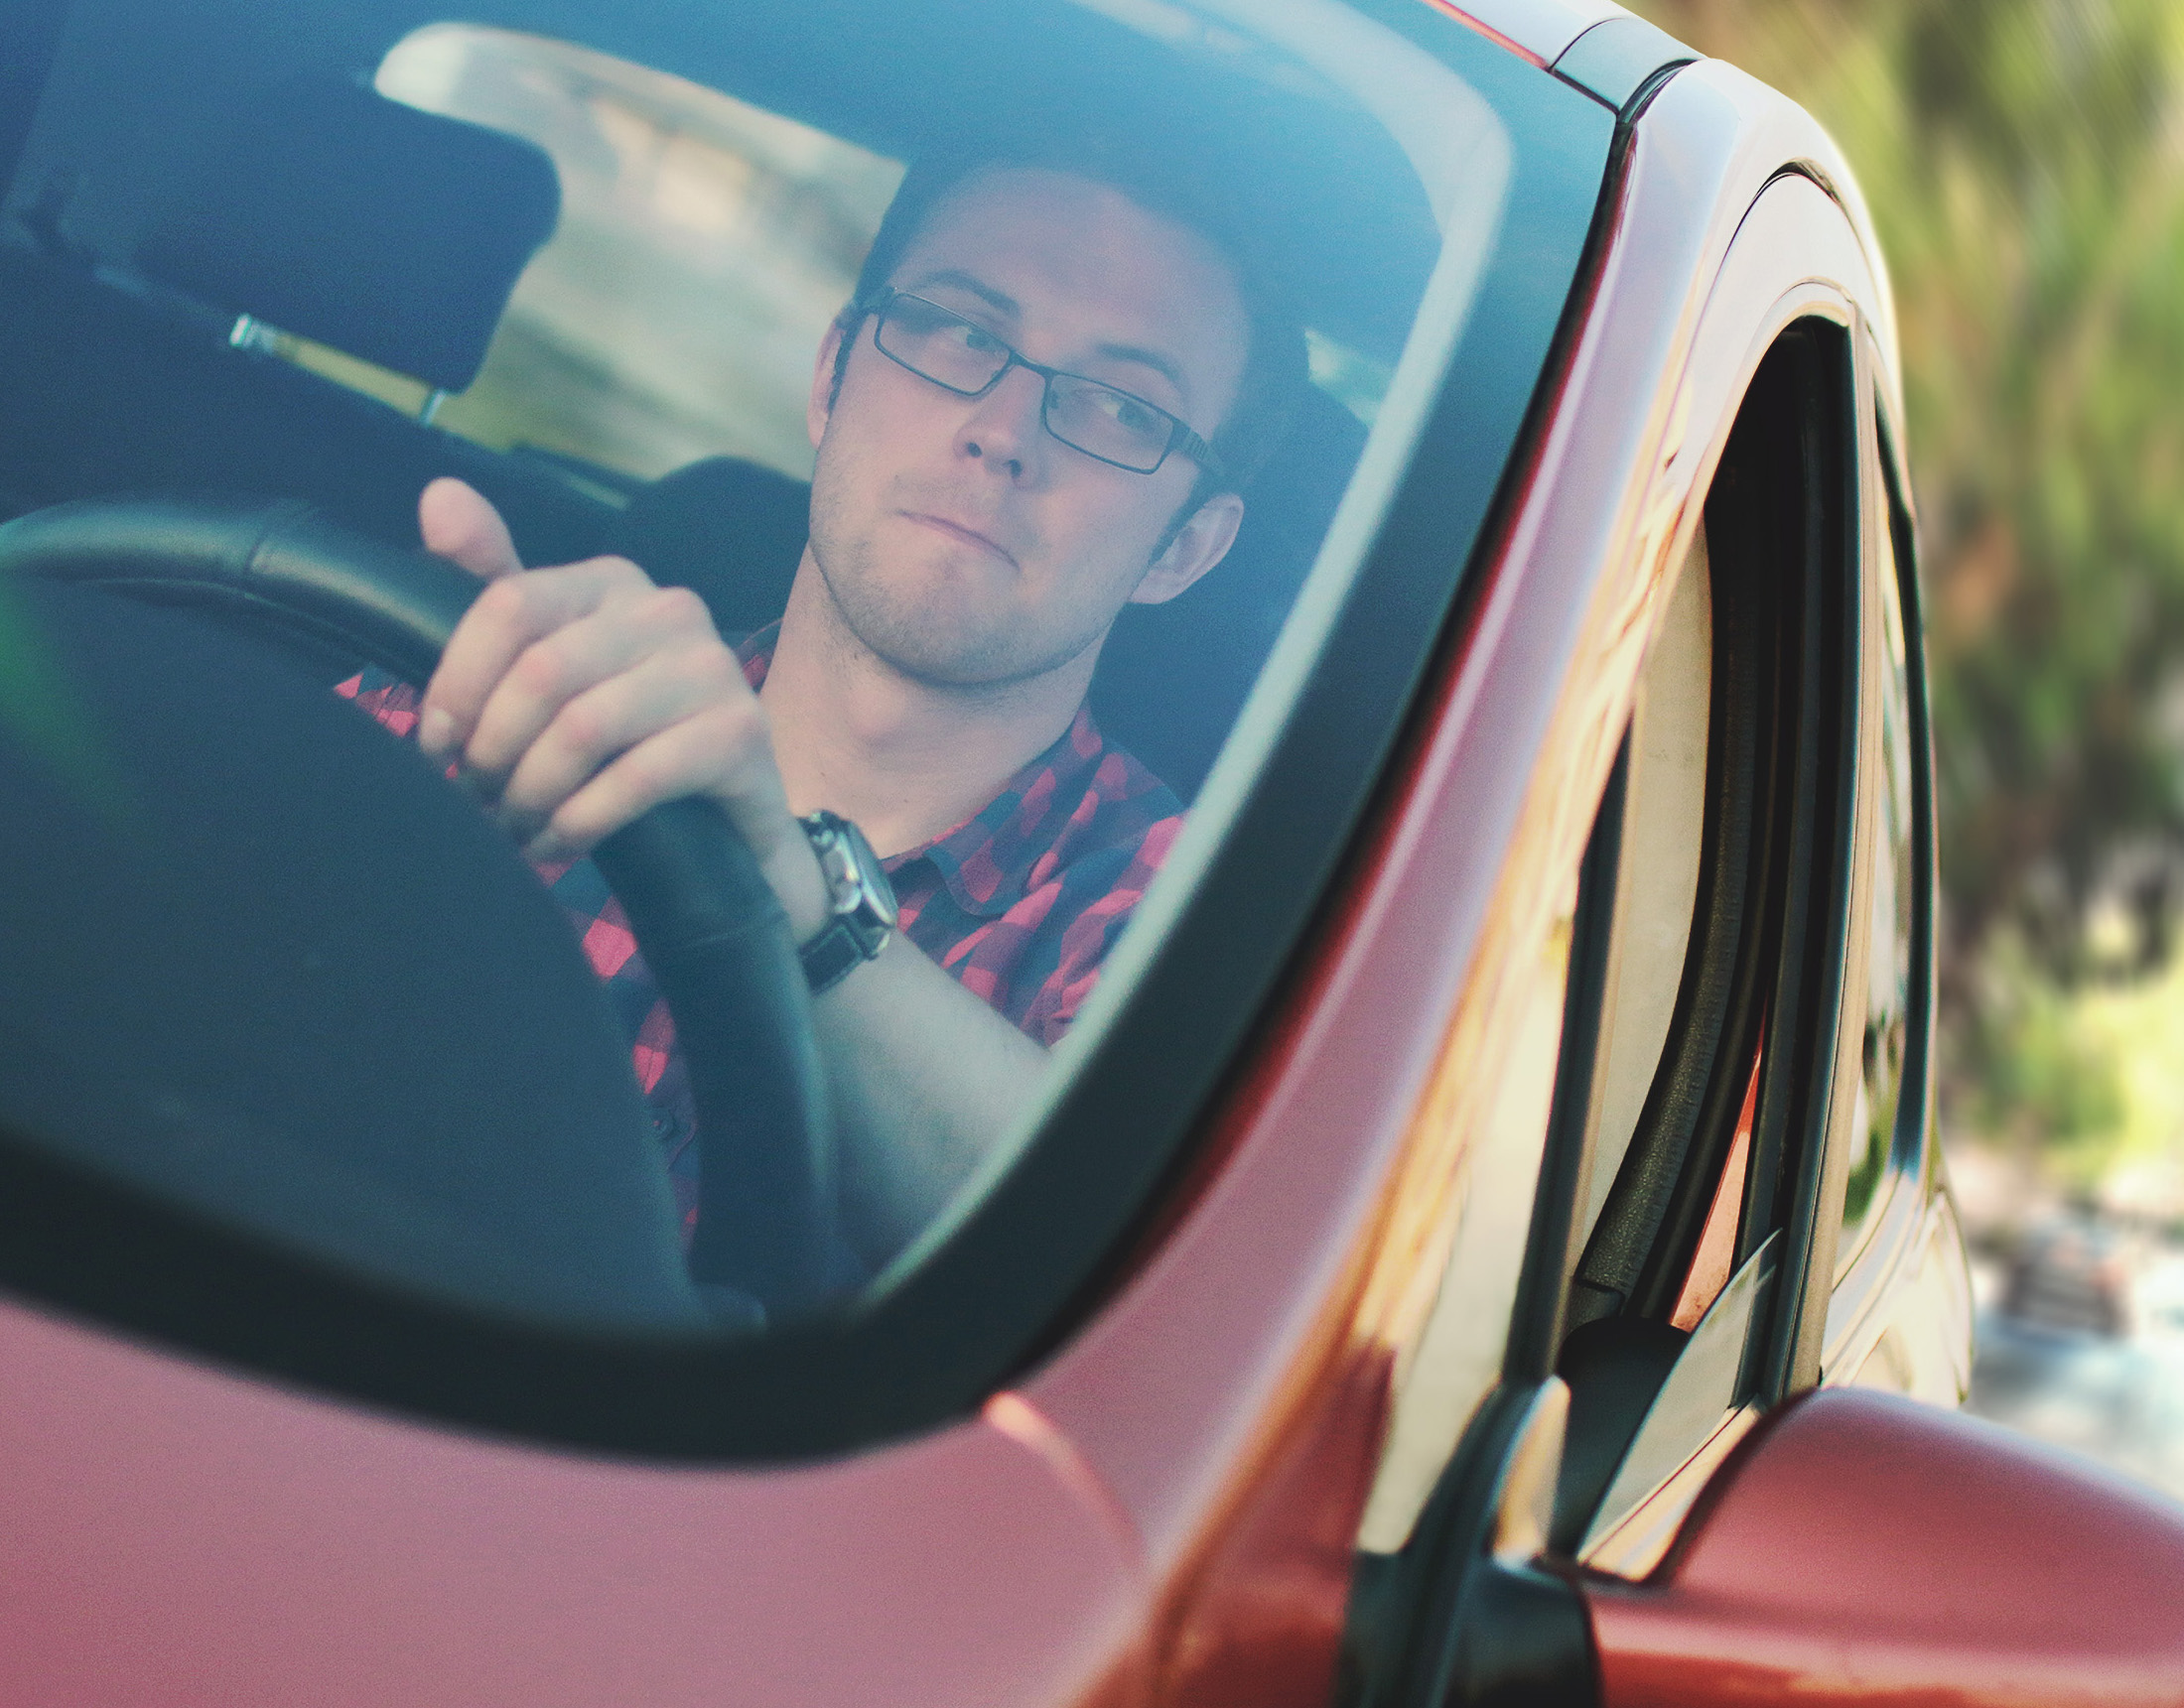 man in car for Personal Defense Connection's Am I Being Followed post